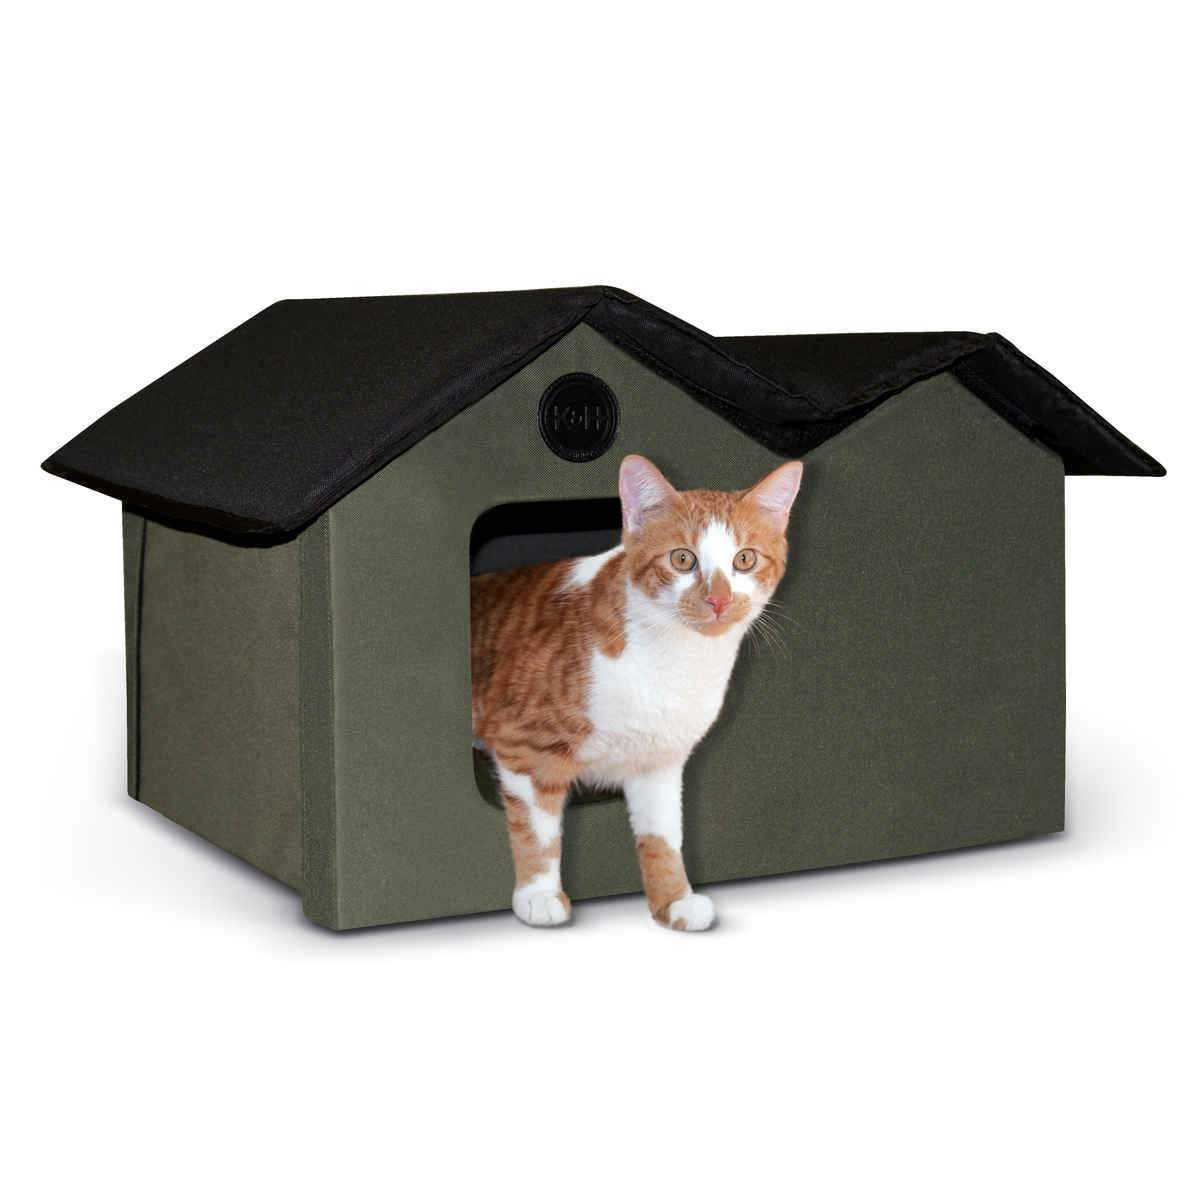 K&H Manufacturing Kh3971 Unheated Outdoor Kitty House Extra Wide